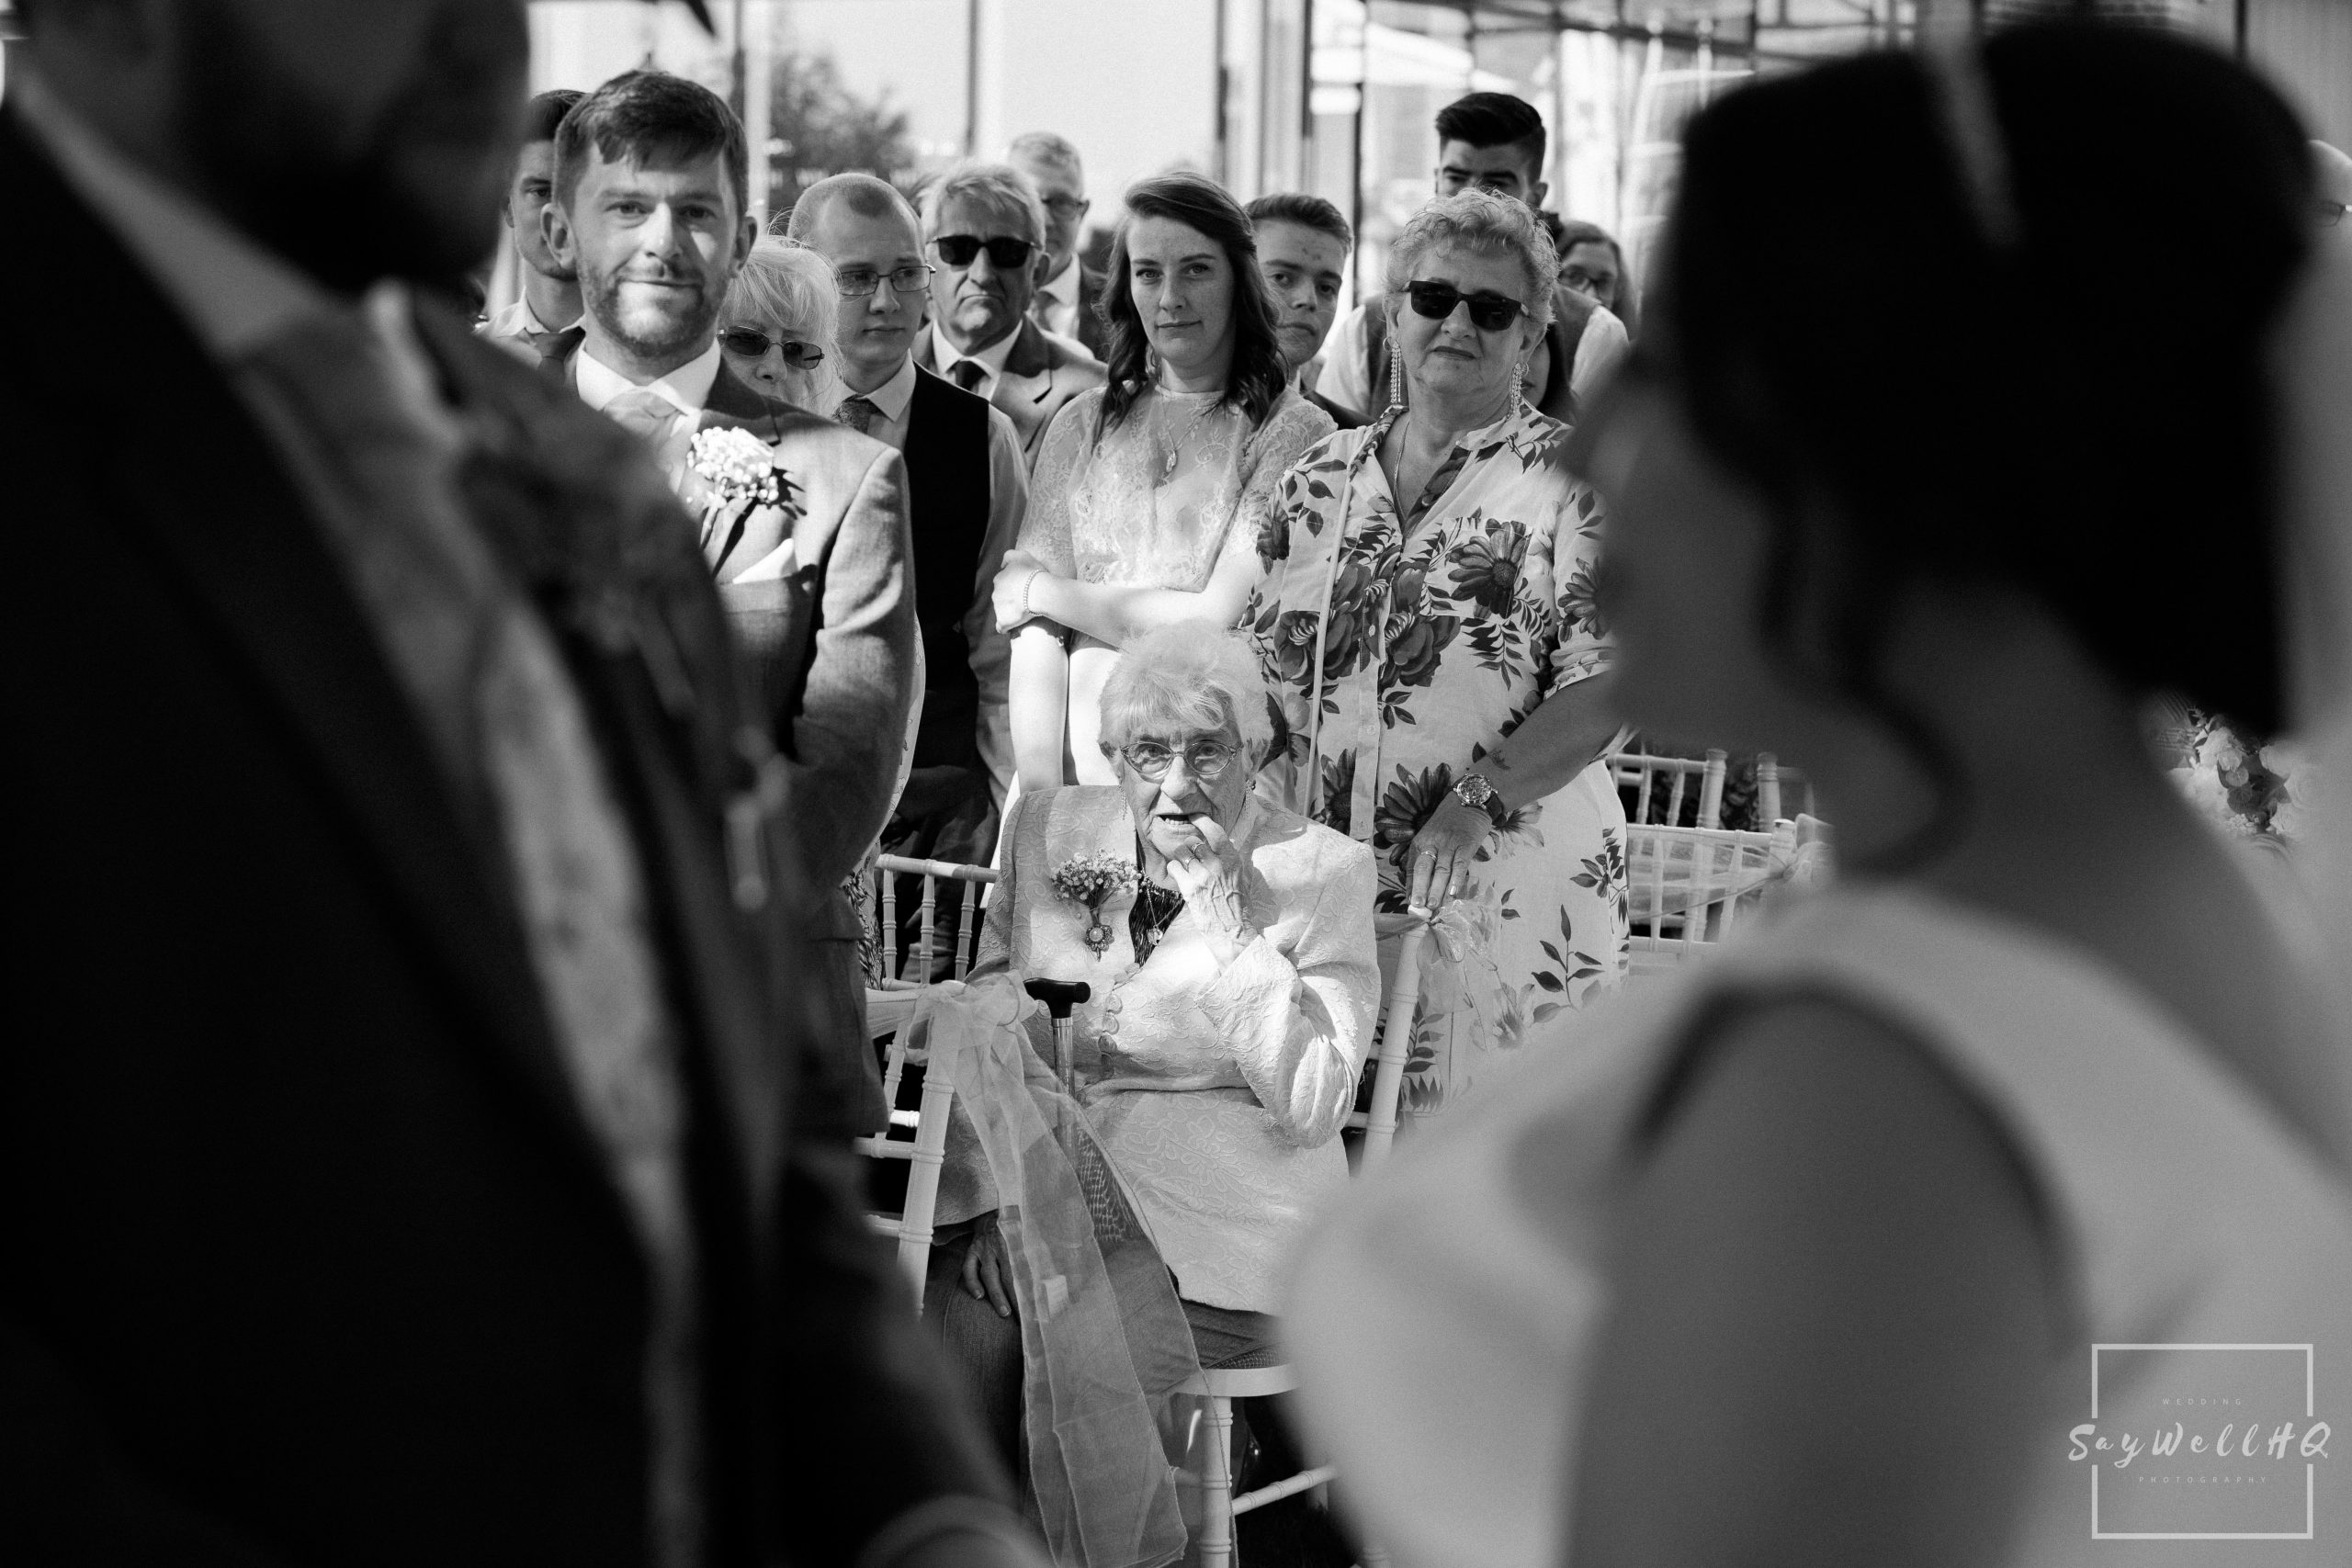 Derby Wedding Photographer - grandma looking at the bride and groom during the wedding ceremony in derby.